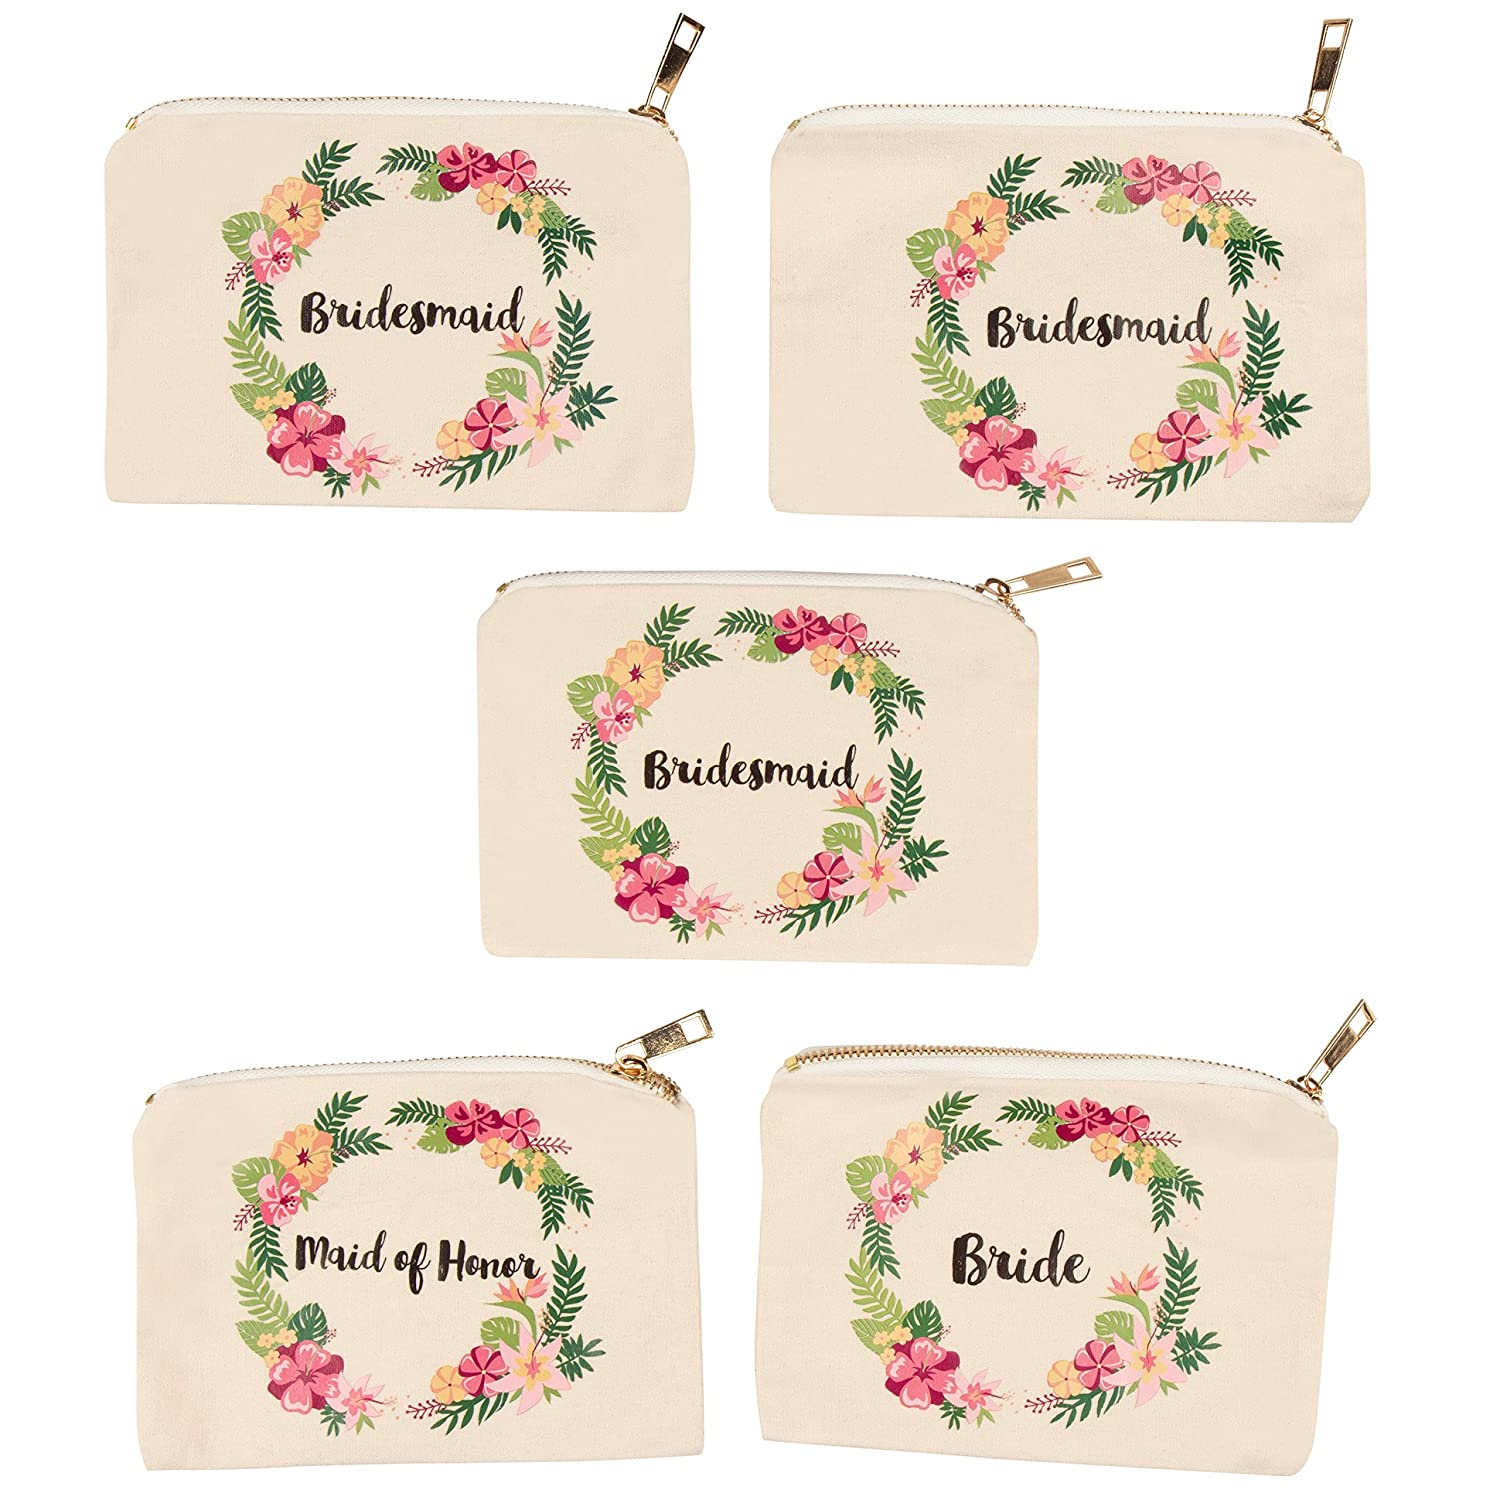 Bridal Shower Makeup Bag - 5-Pack Canvas Cosmetic Pouches for Wedding Favors, Bachelorette Party Gifts, Bride Tribe Accessories, Tropical Floral Wreath Design, 7.2 x 4.7 Inches